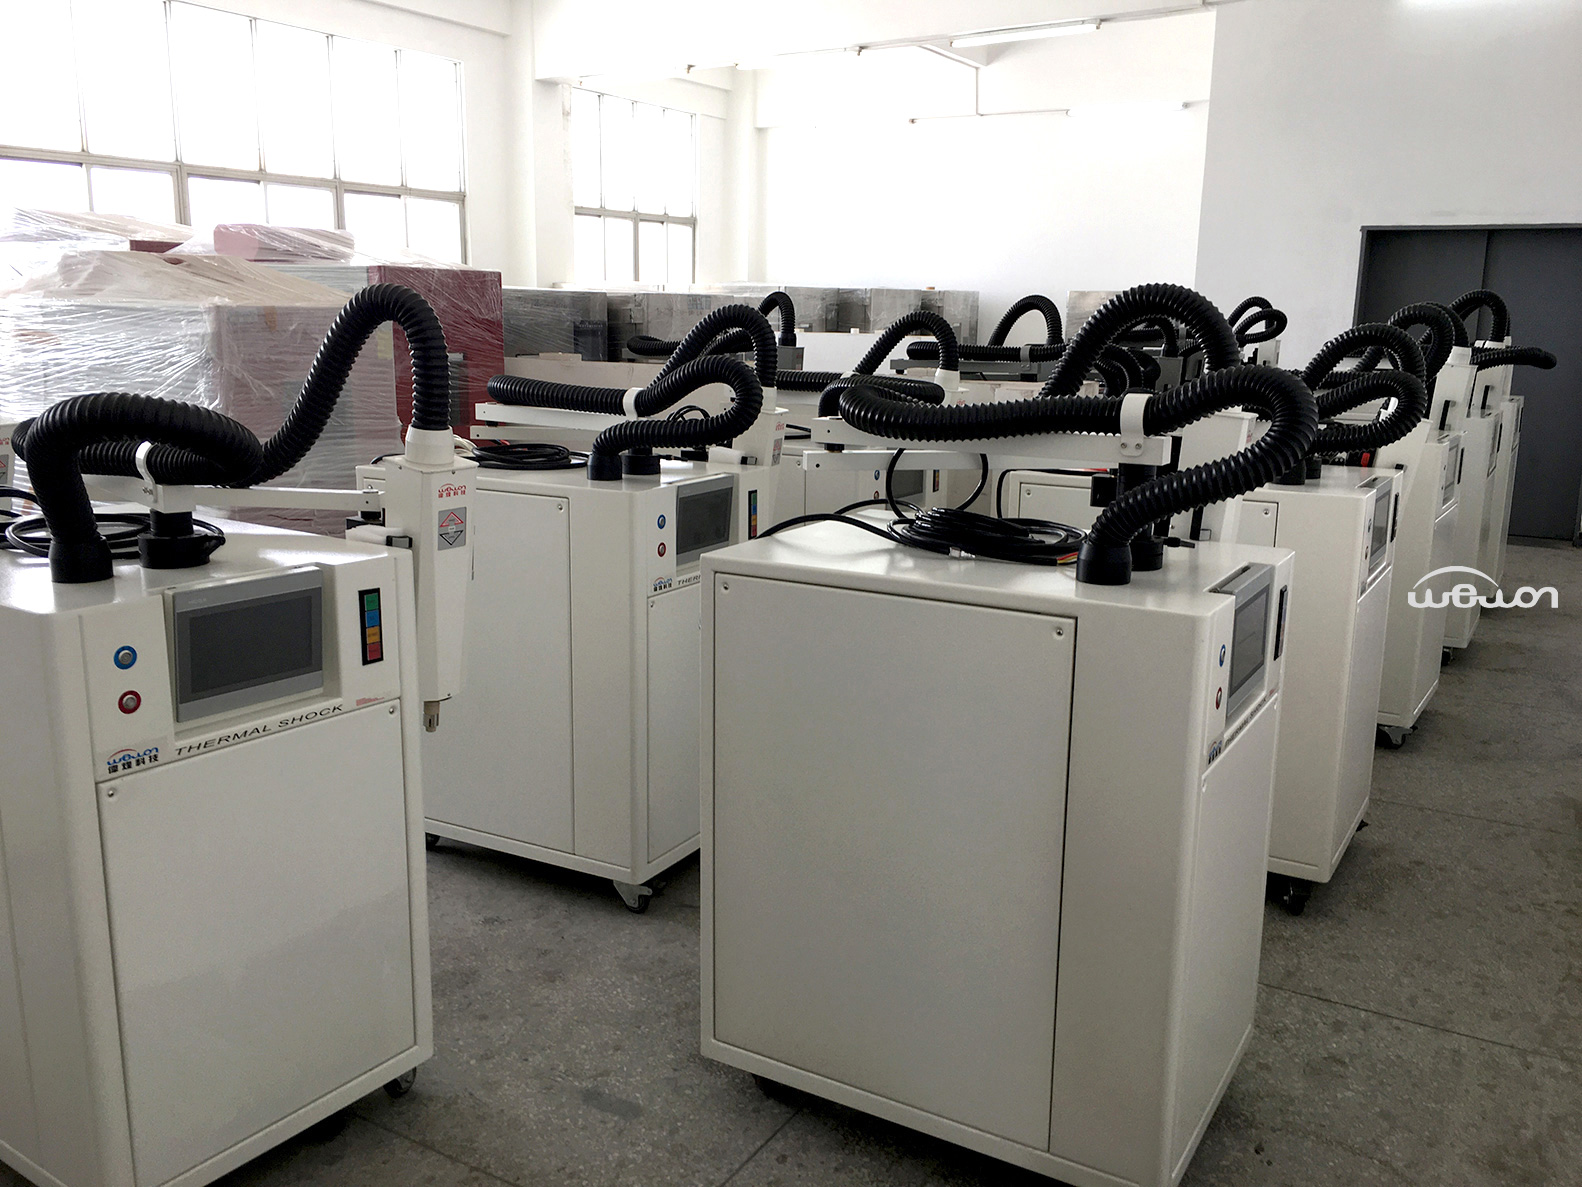 ATS 535 thermal cycling test equipment's photos